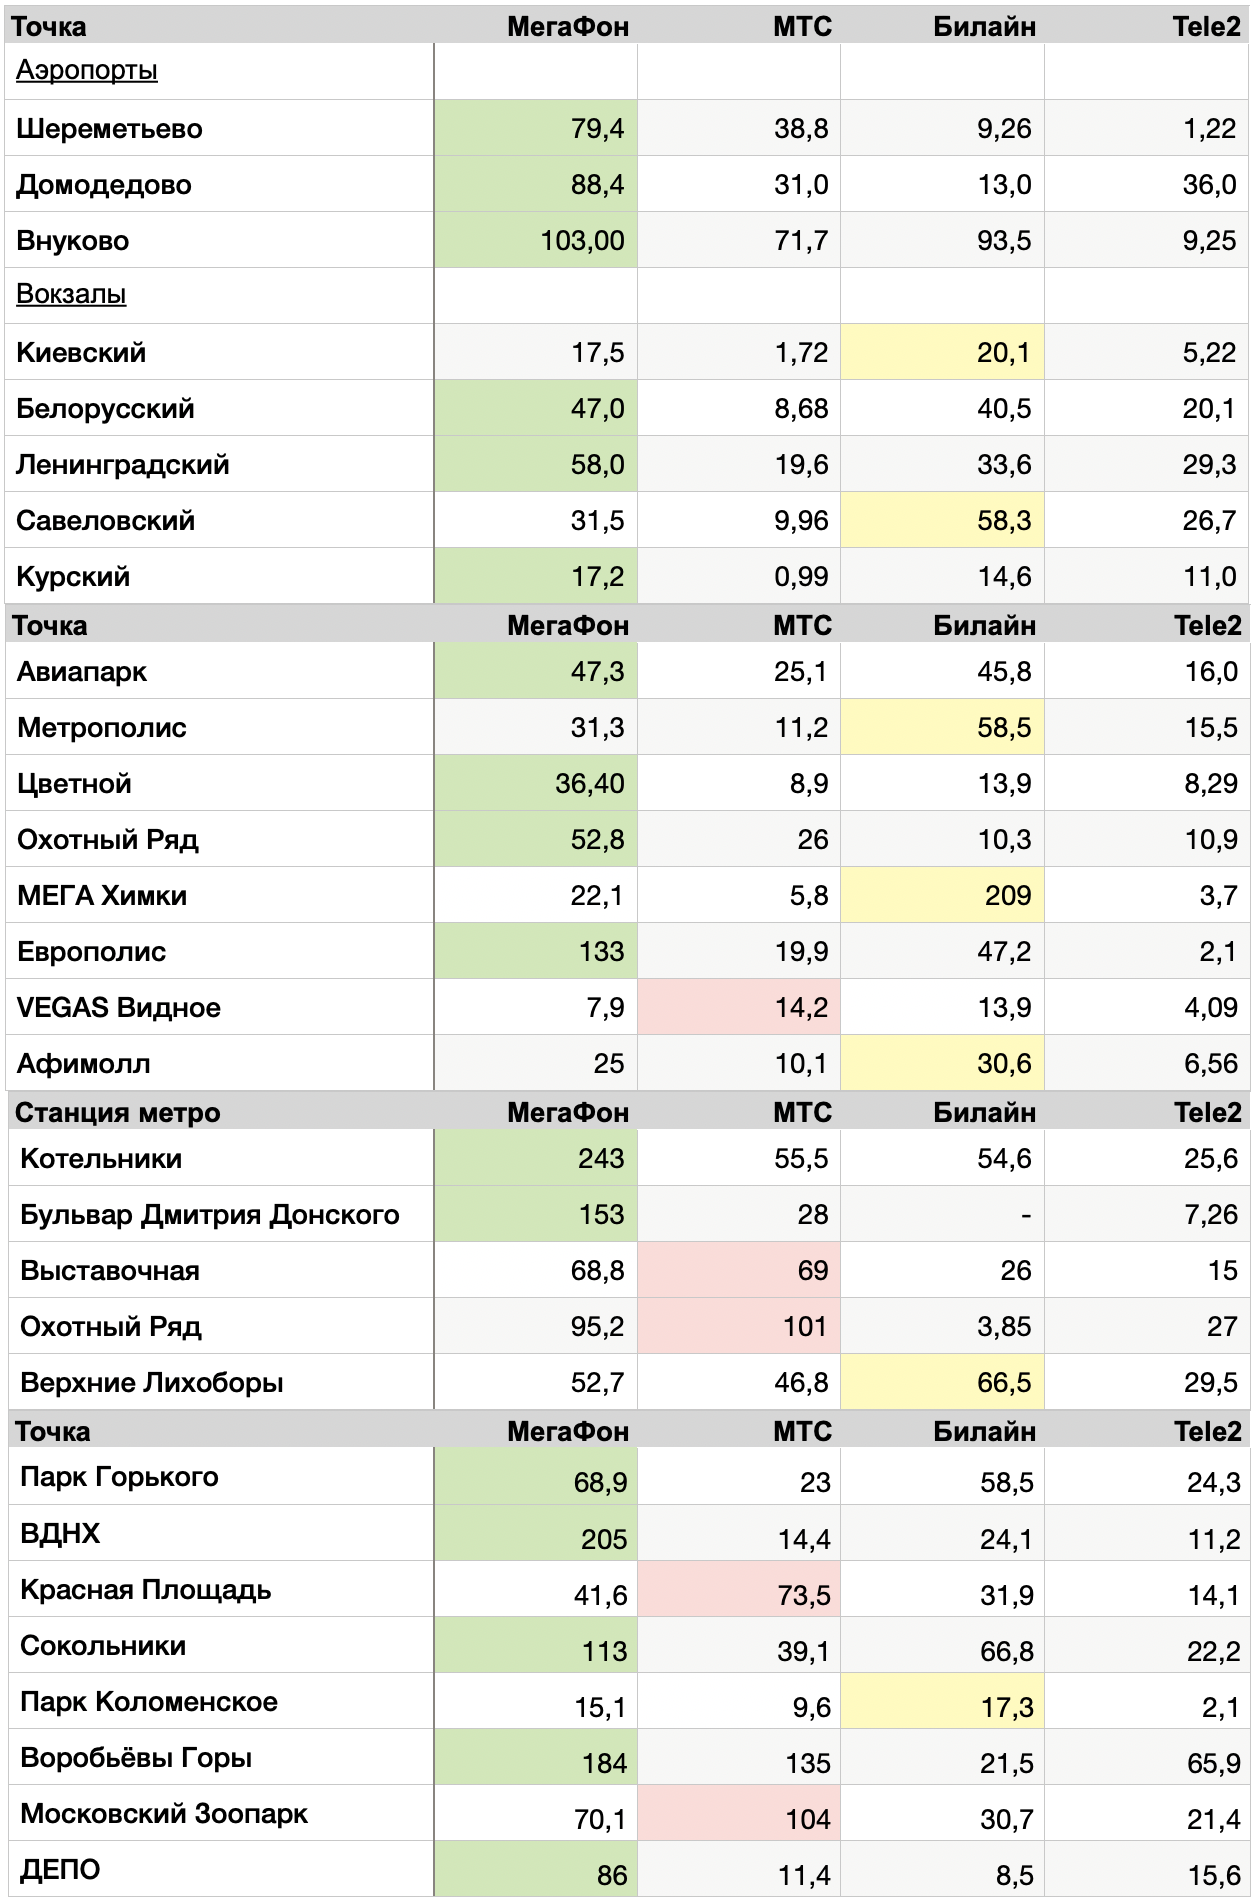 full-internet-test-table-iphonesru-march-2020.png